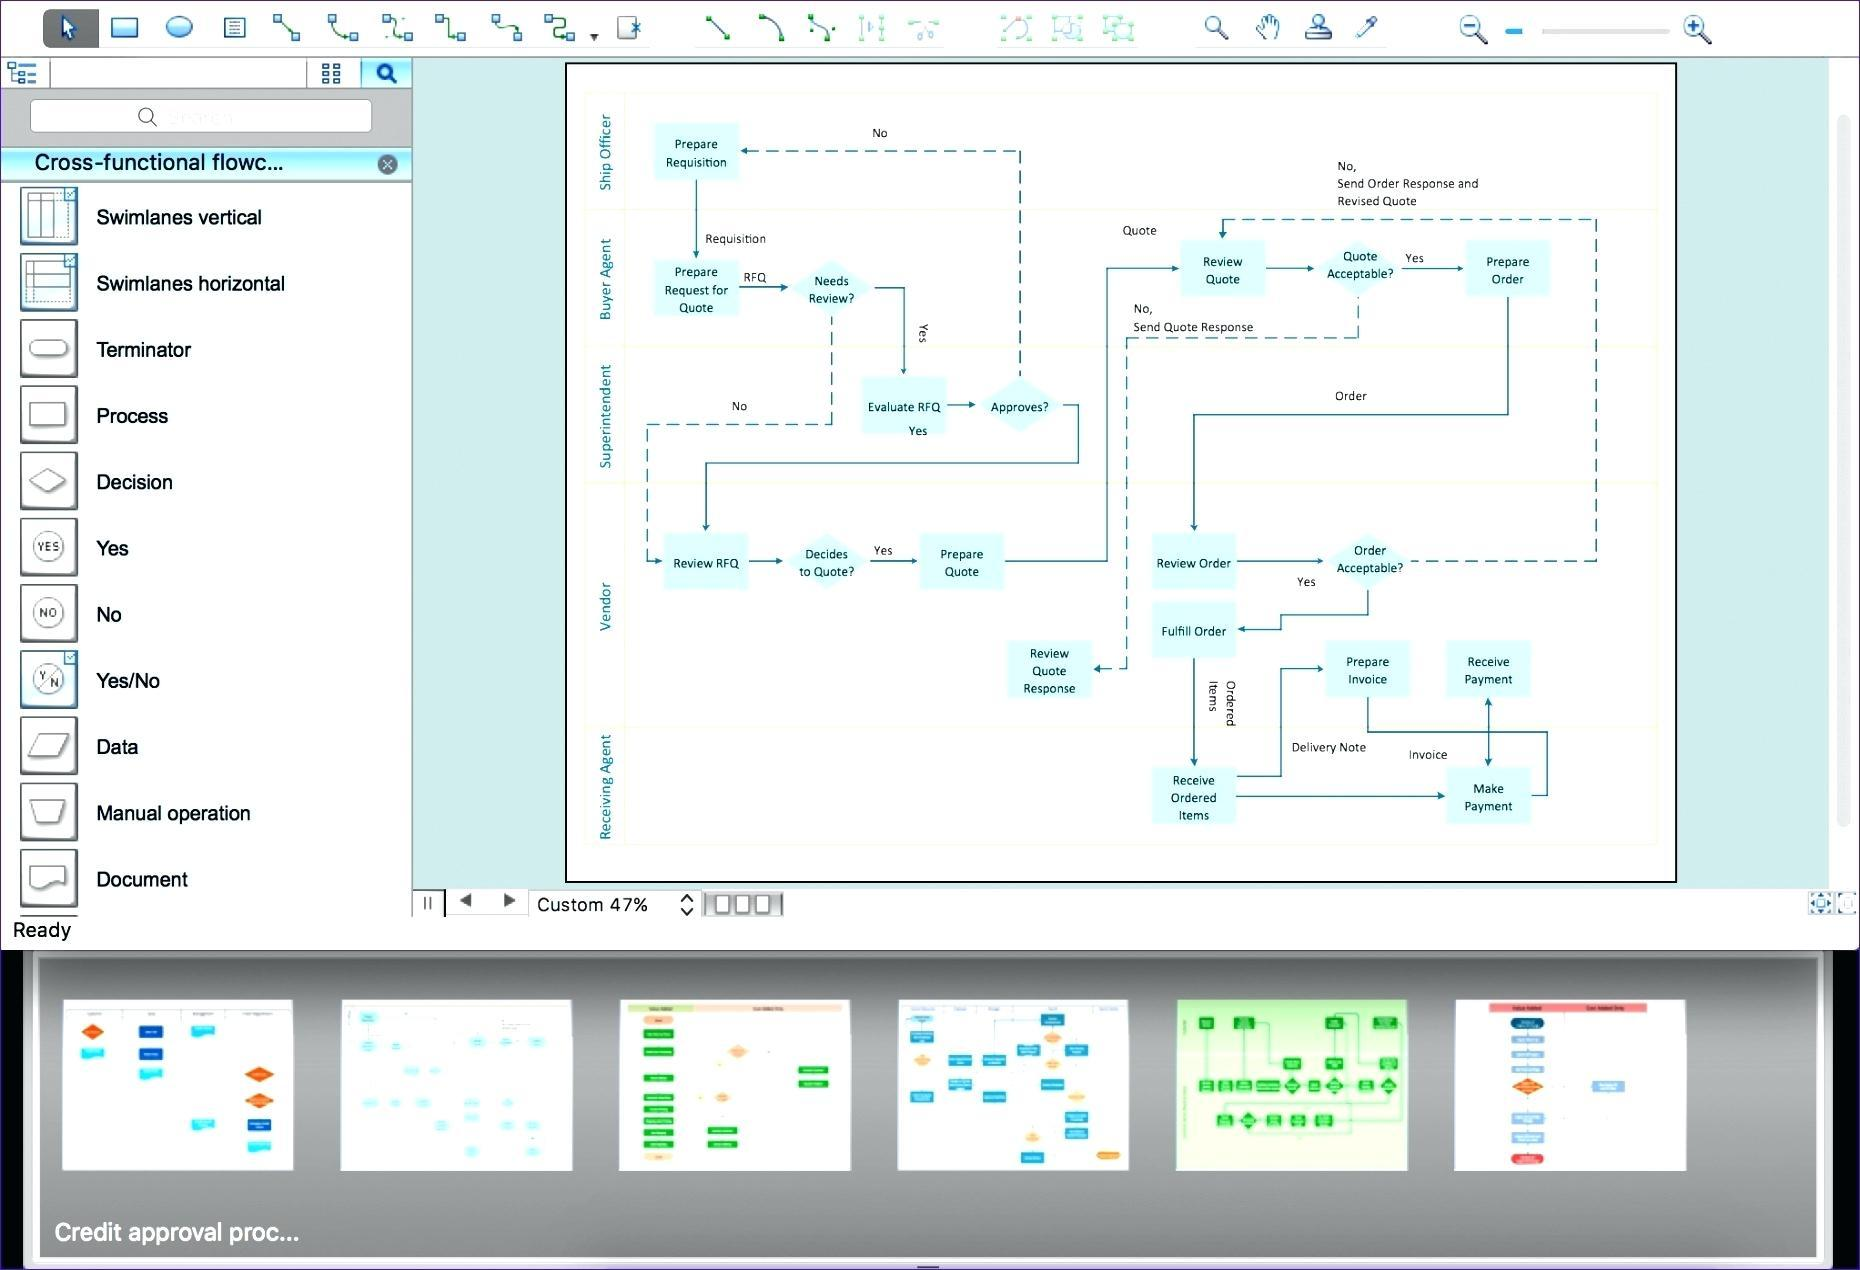 Excel Template For Process Mapping